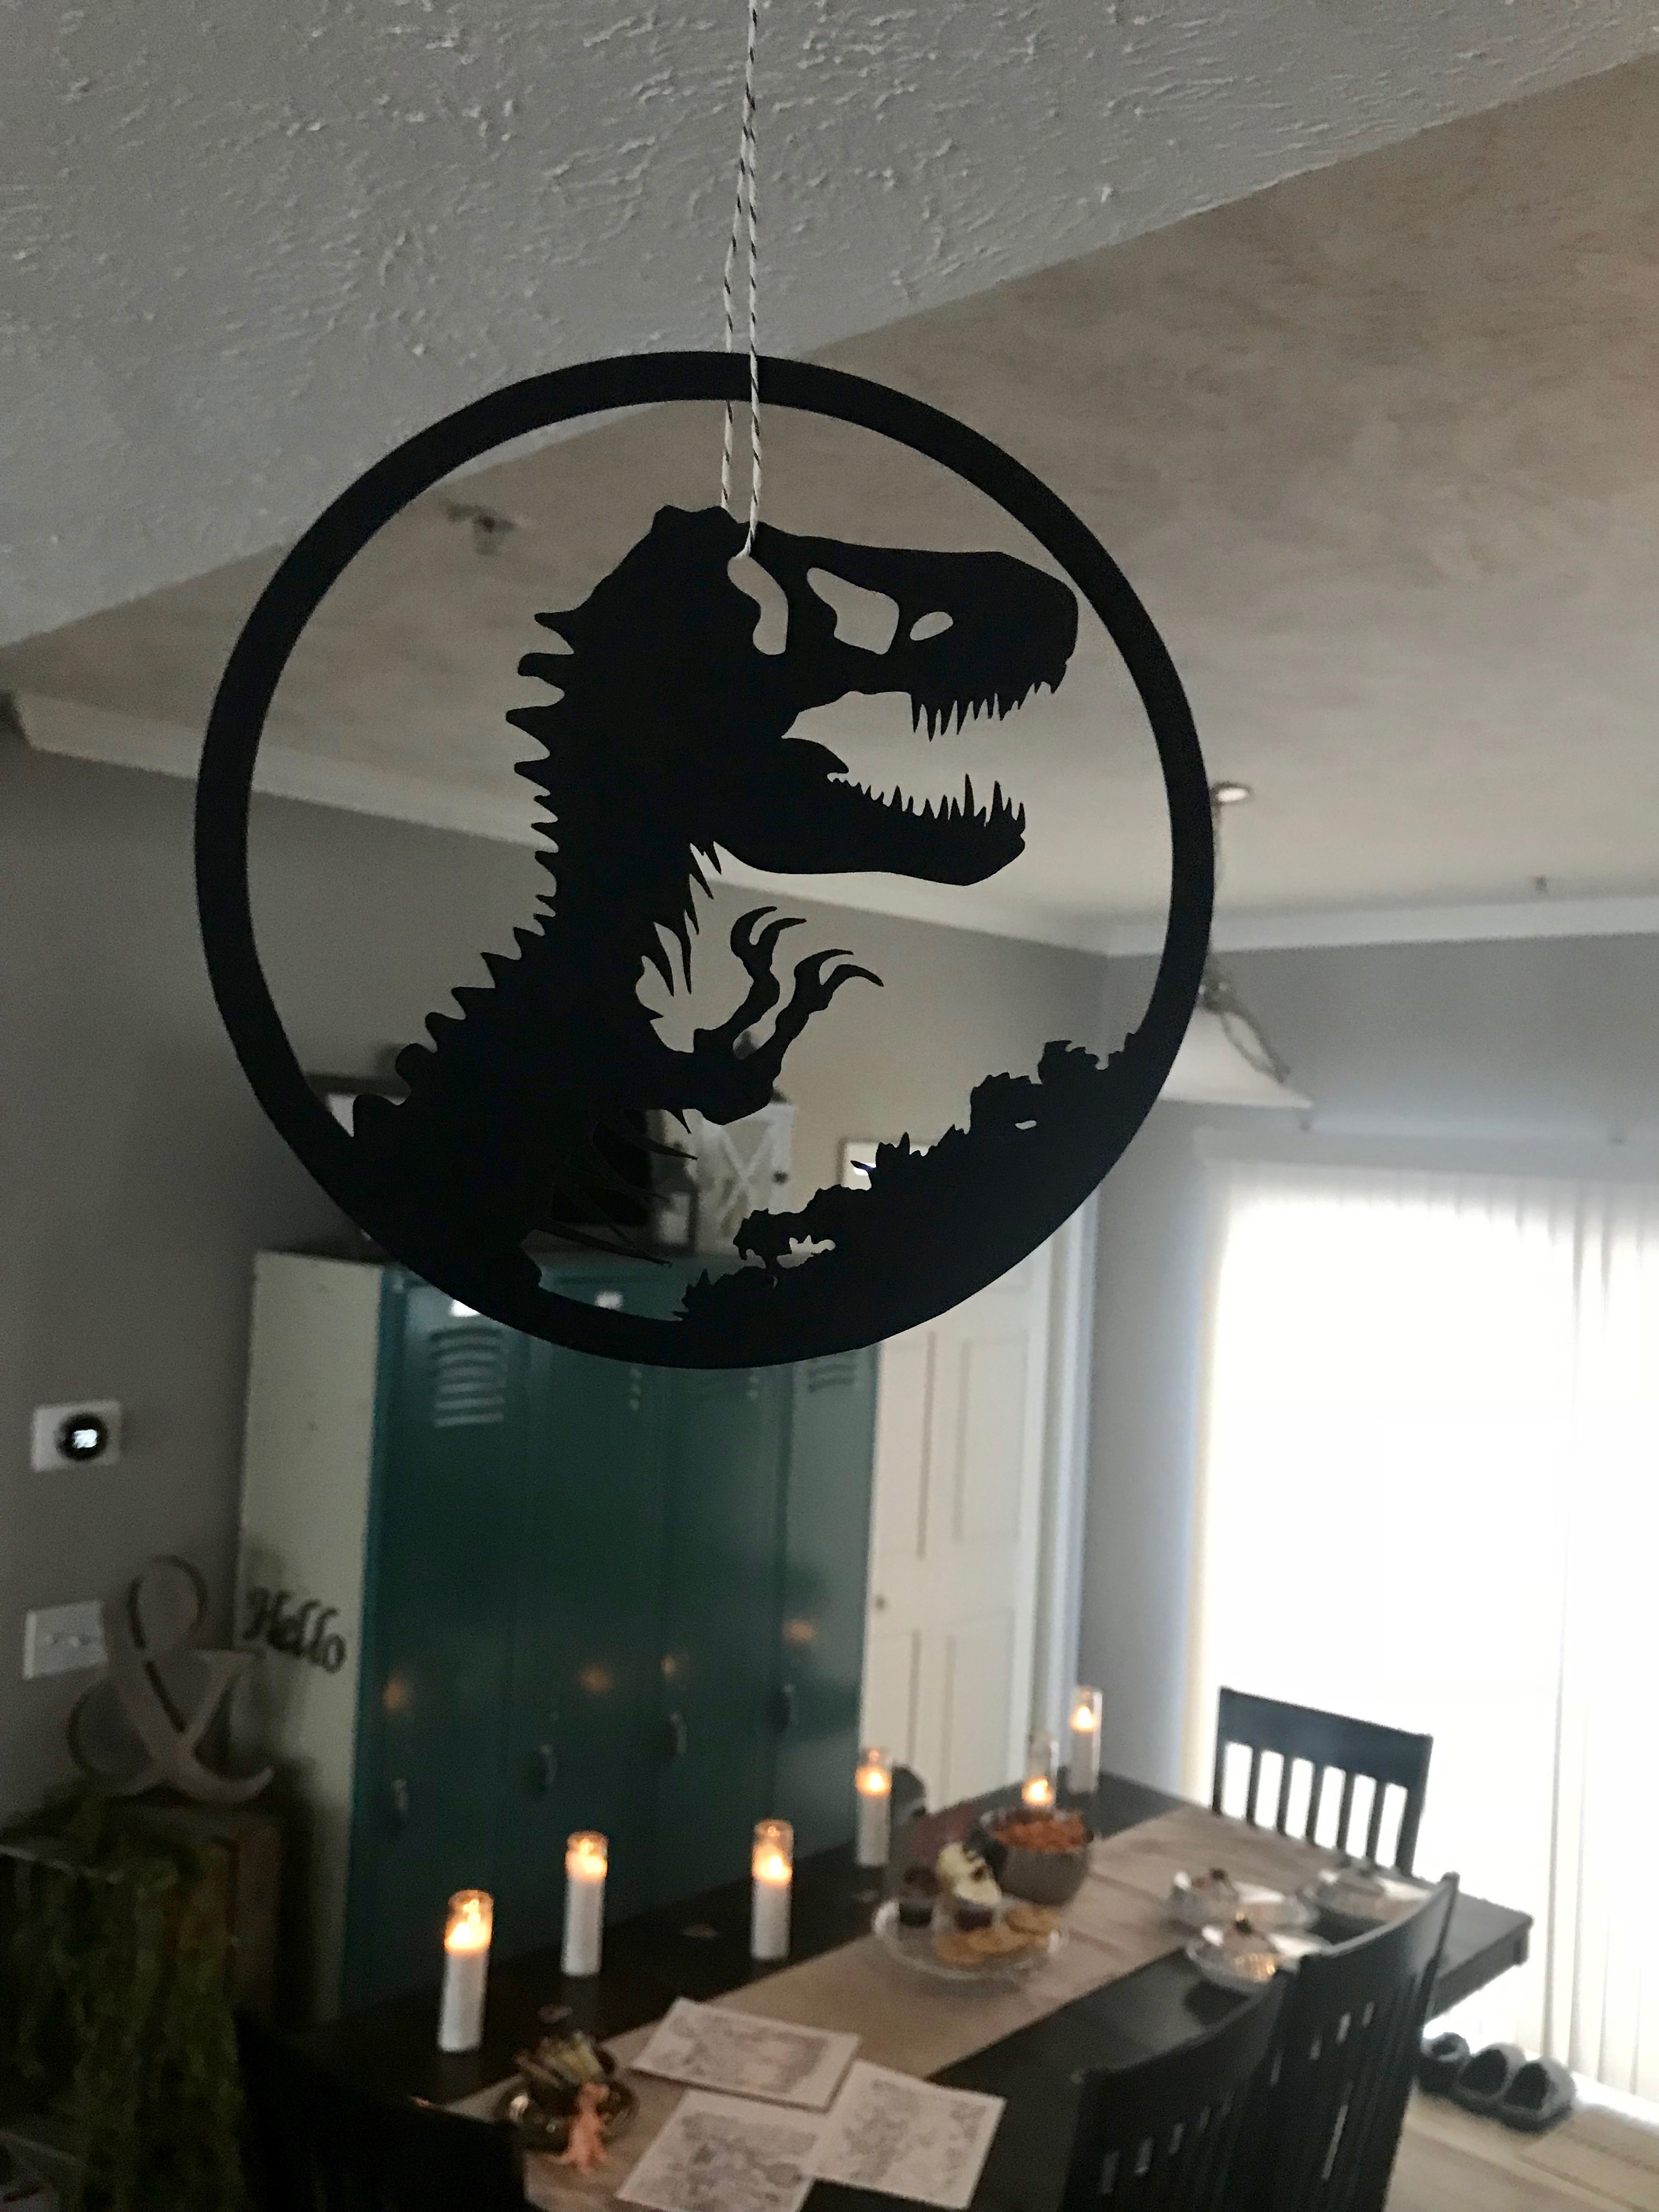 Jurassic Park Decorations